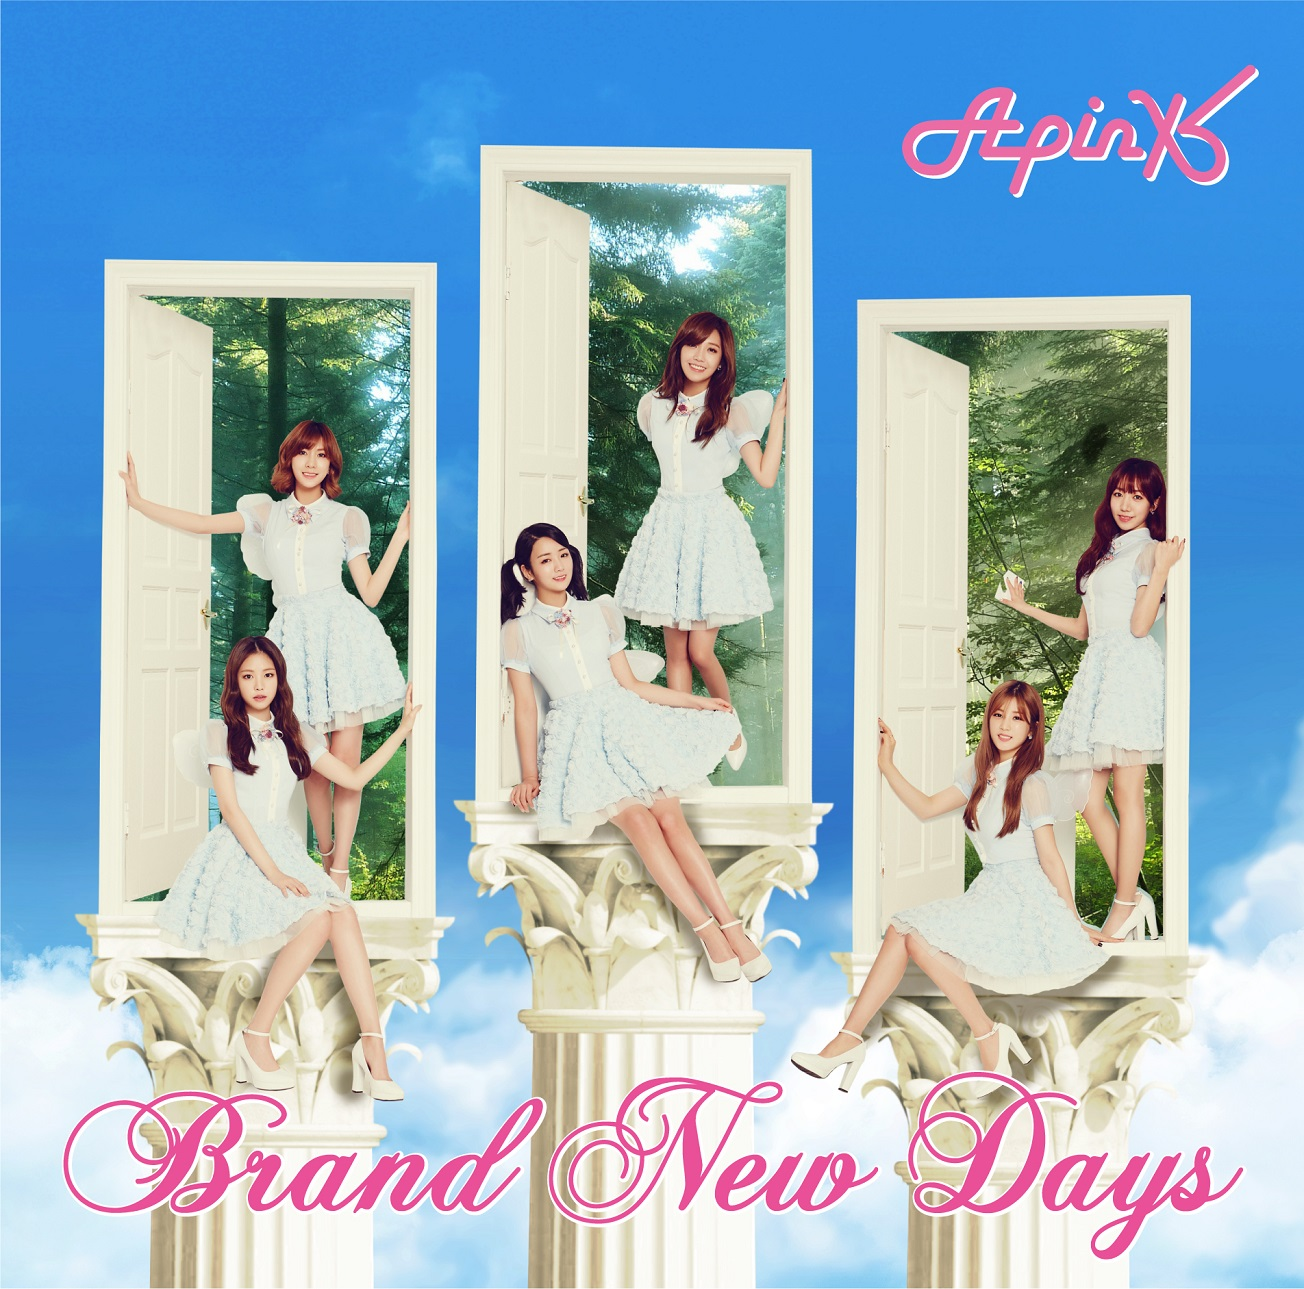 20160404.01.01 A Pink - Brand New Days cover 3.jpg